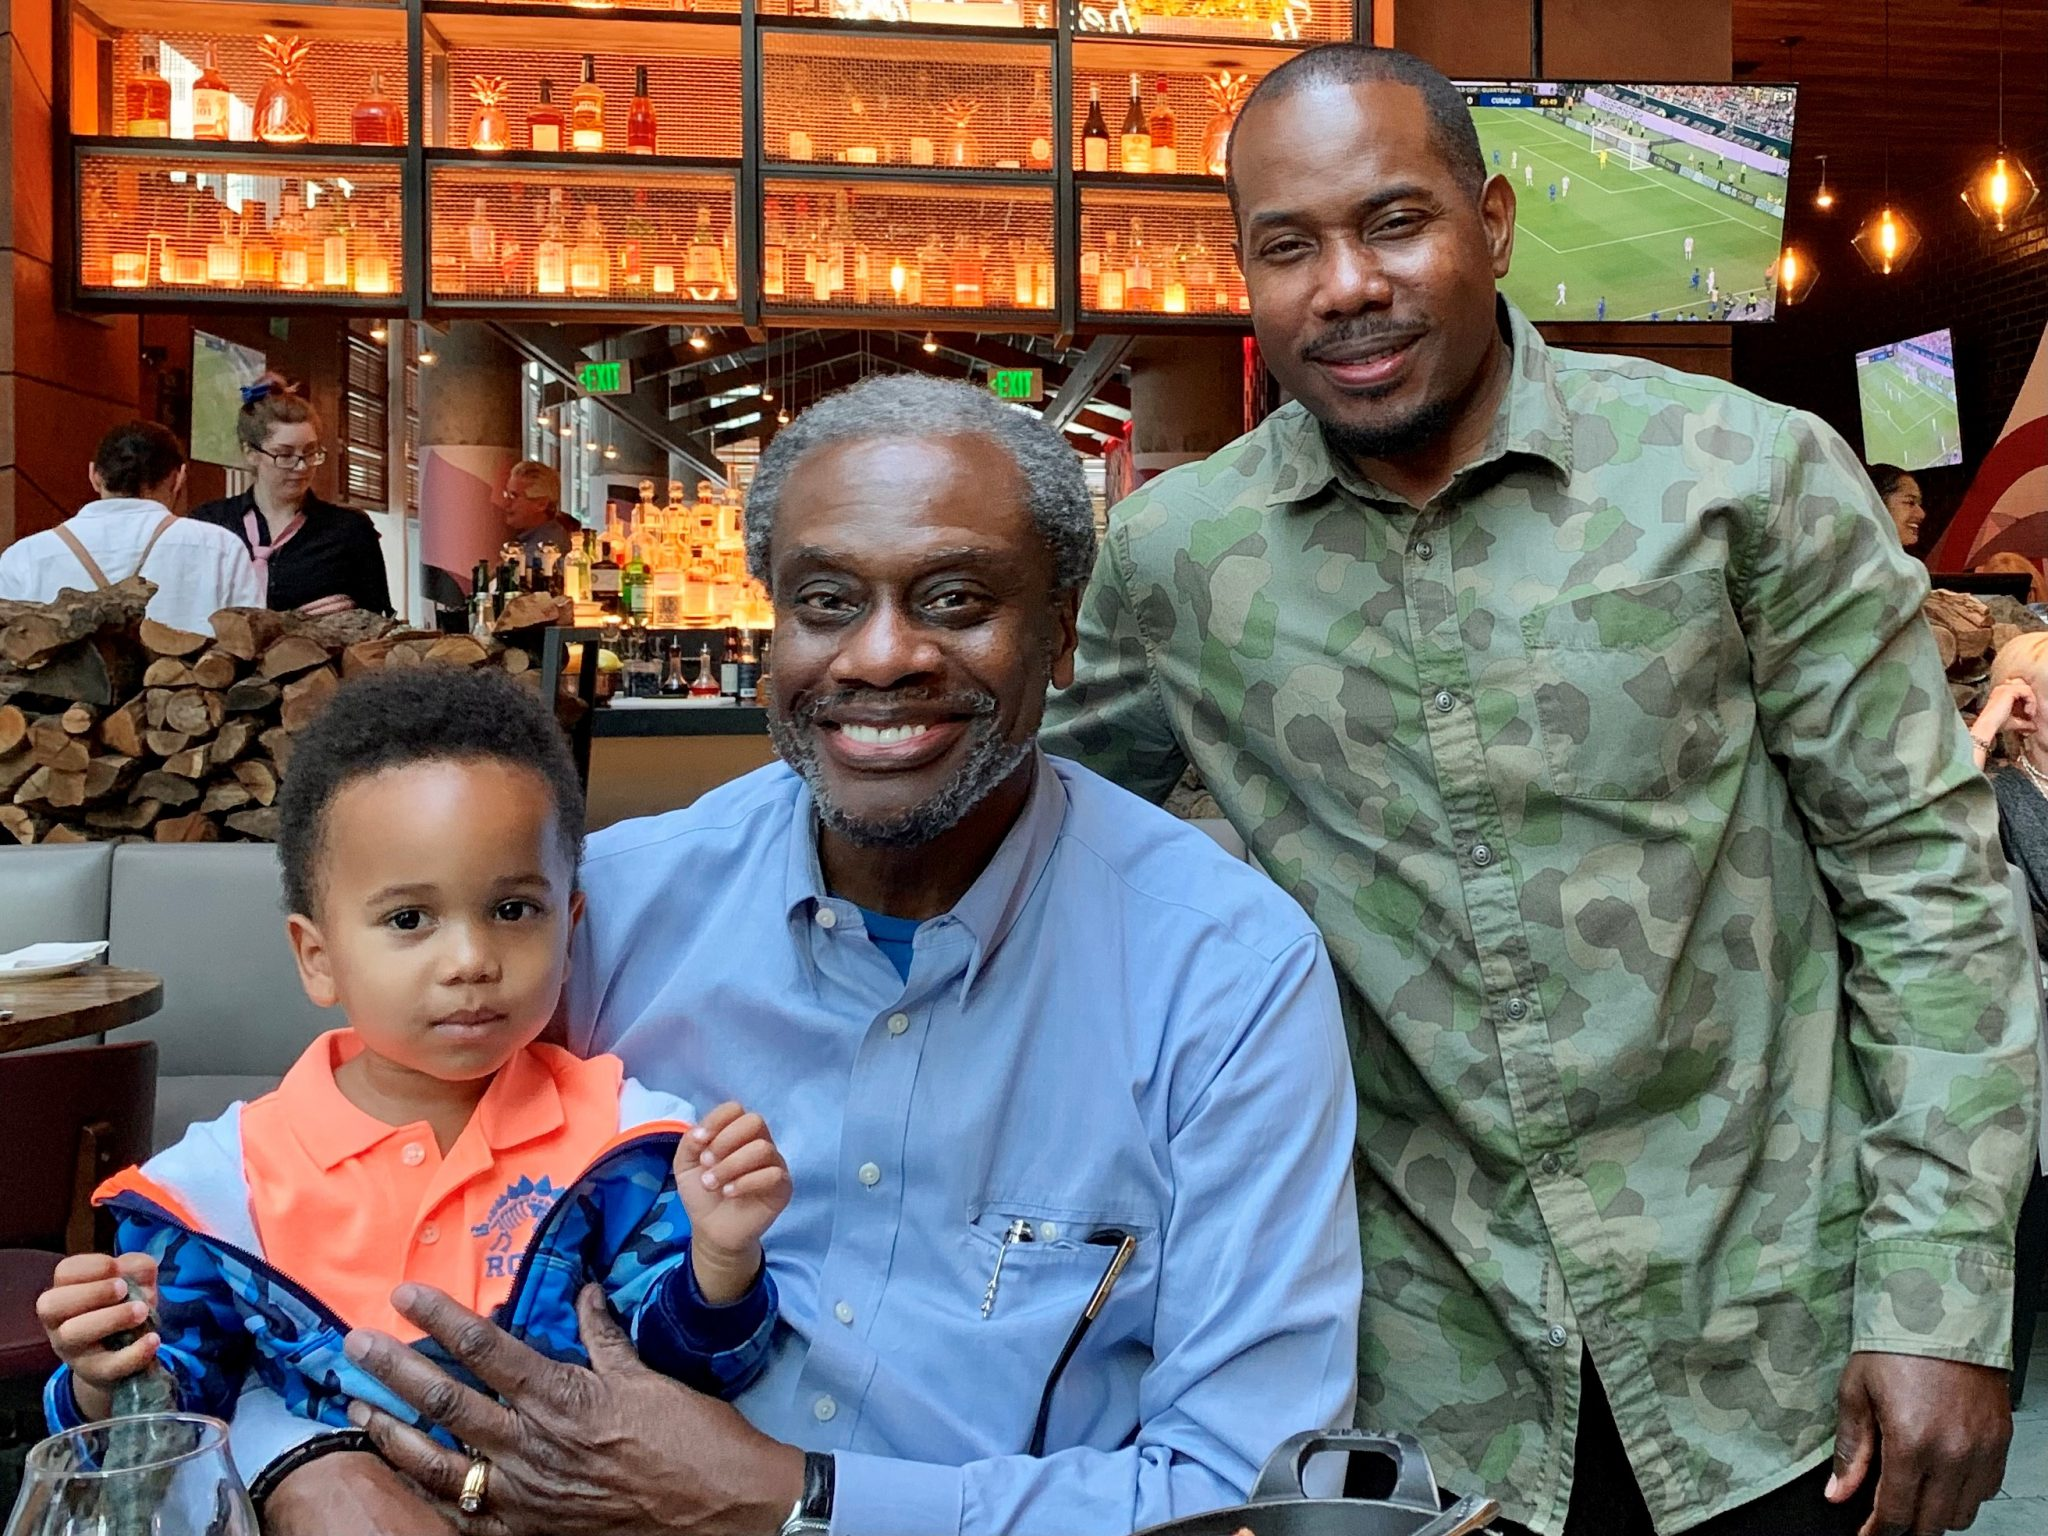 Board member Anthony Ewell with his uncle Larry Tripplett and son Anden